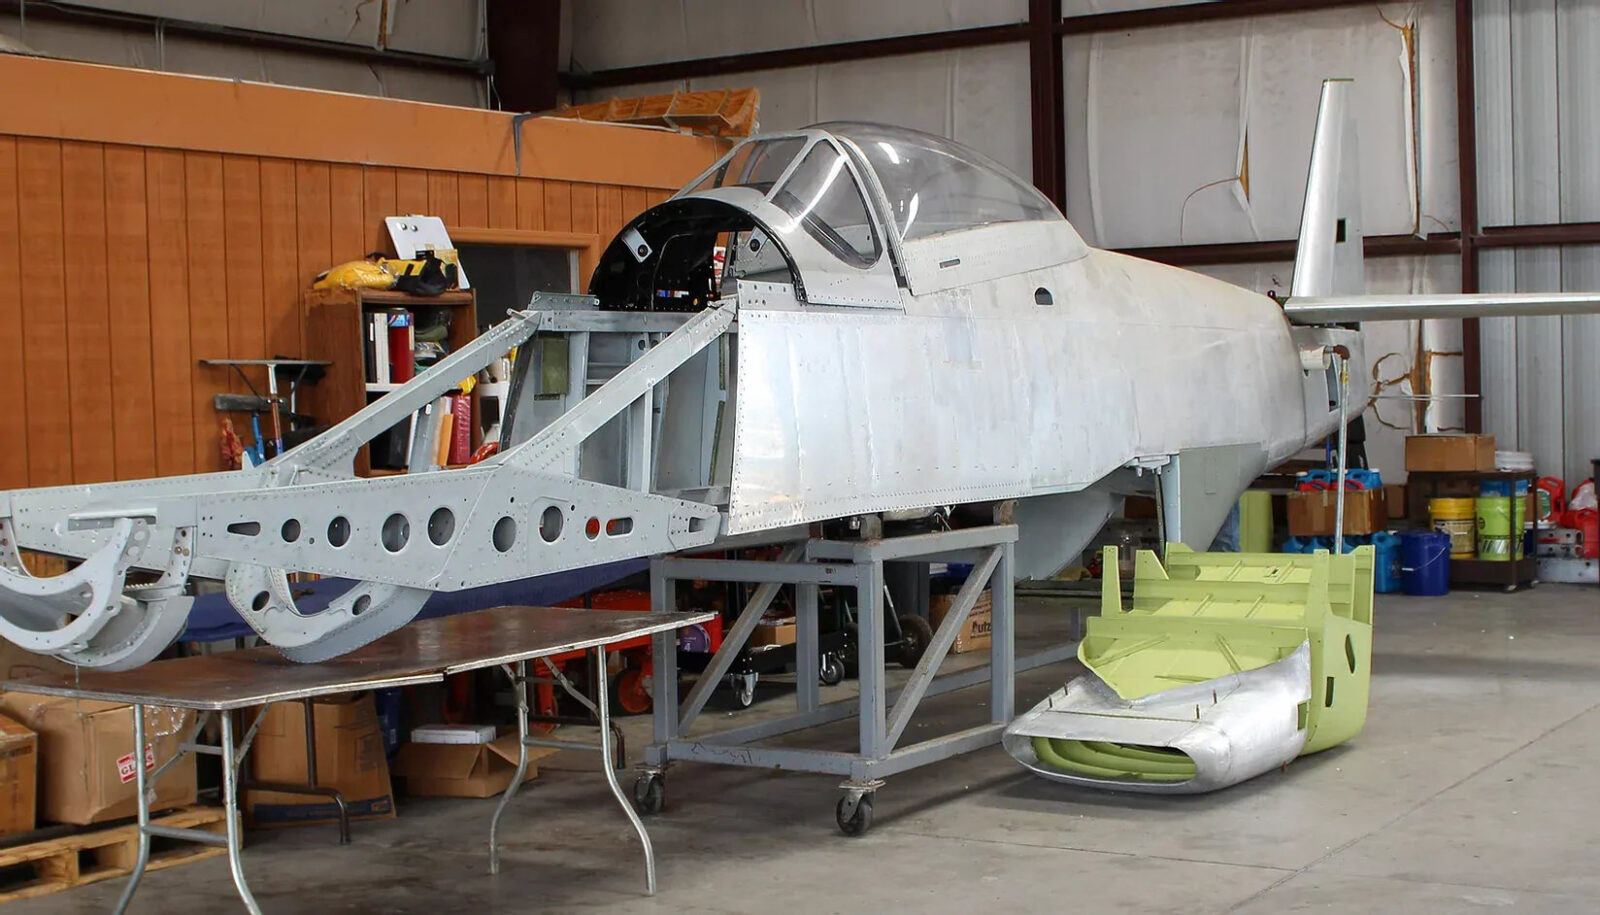 North American P-51D Mustang Restoration